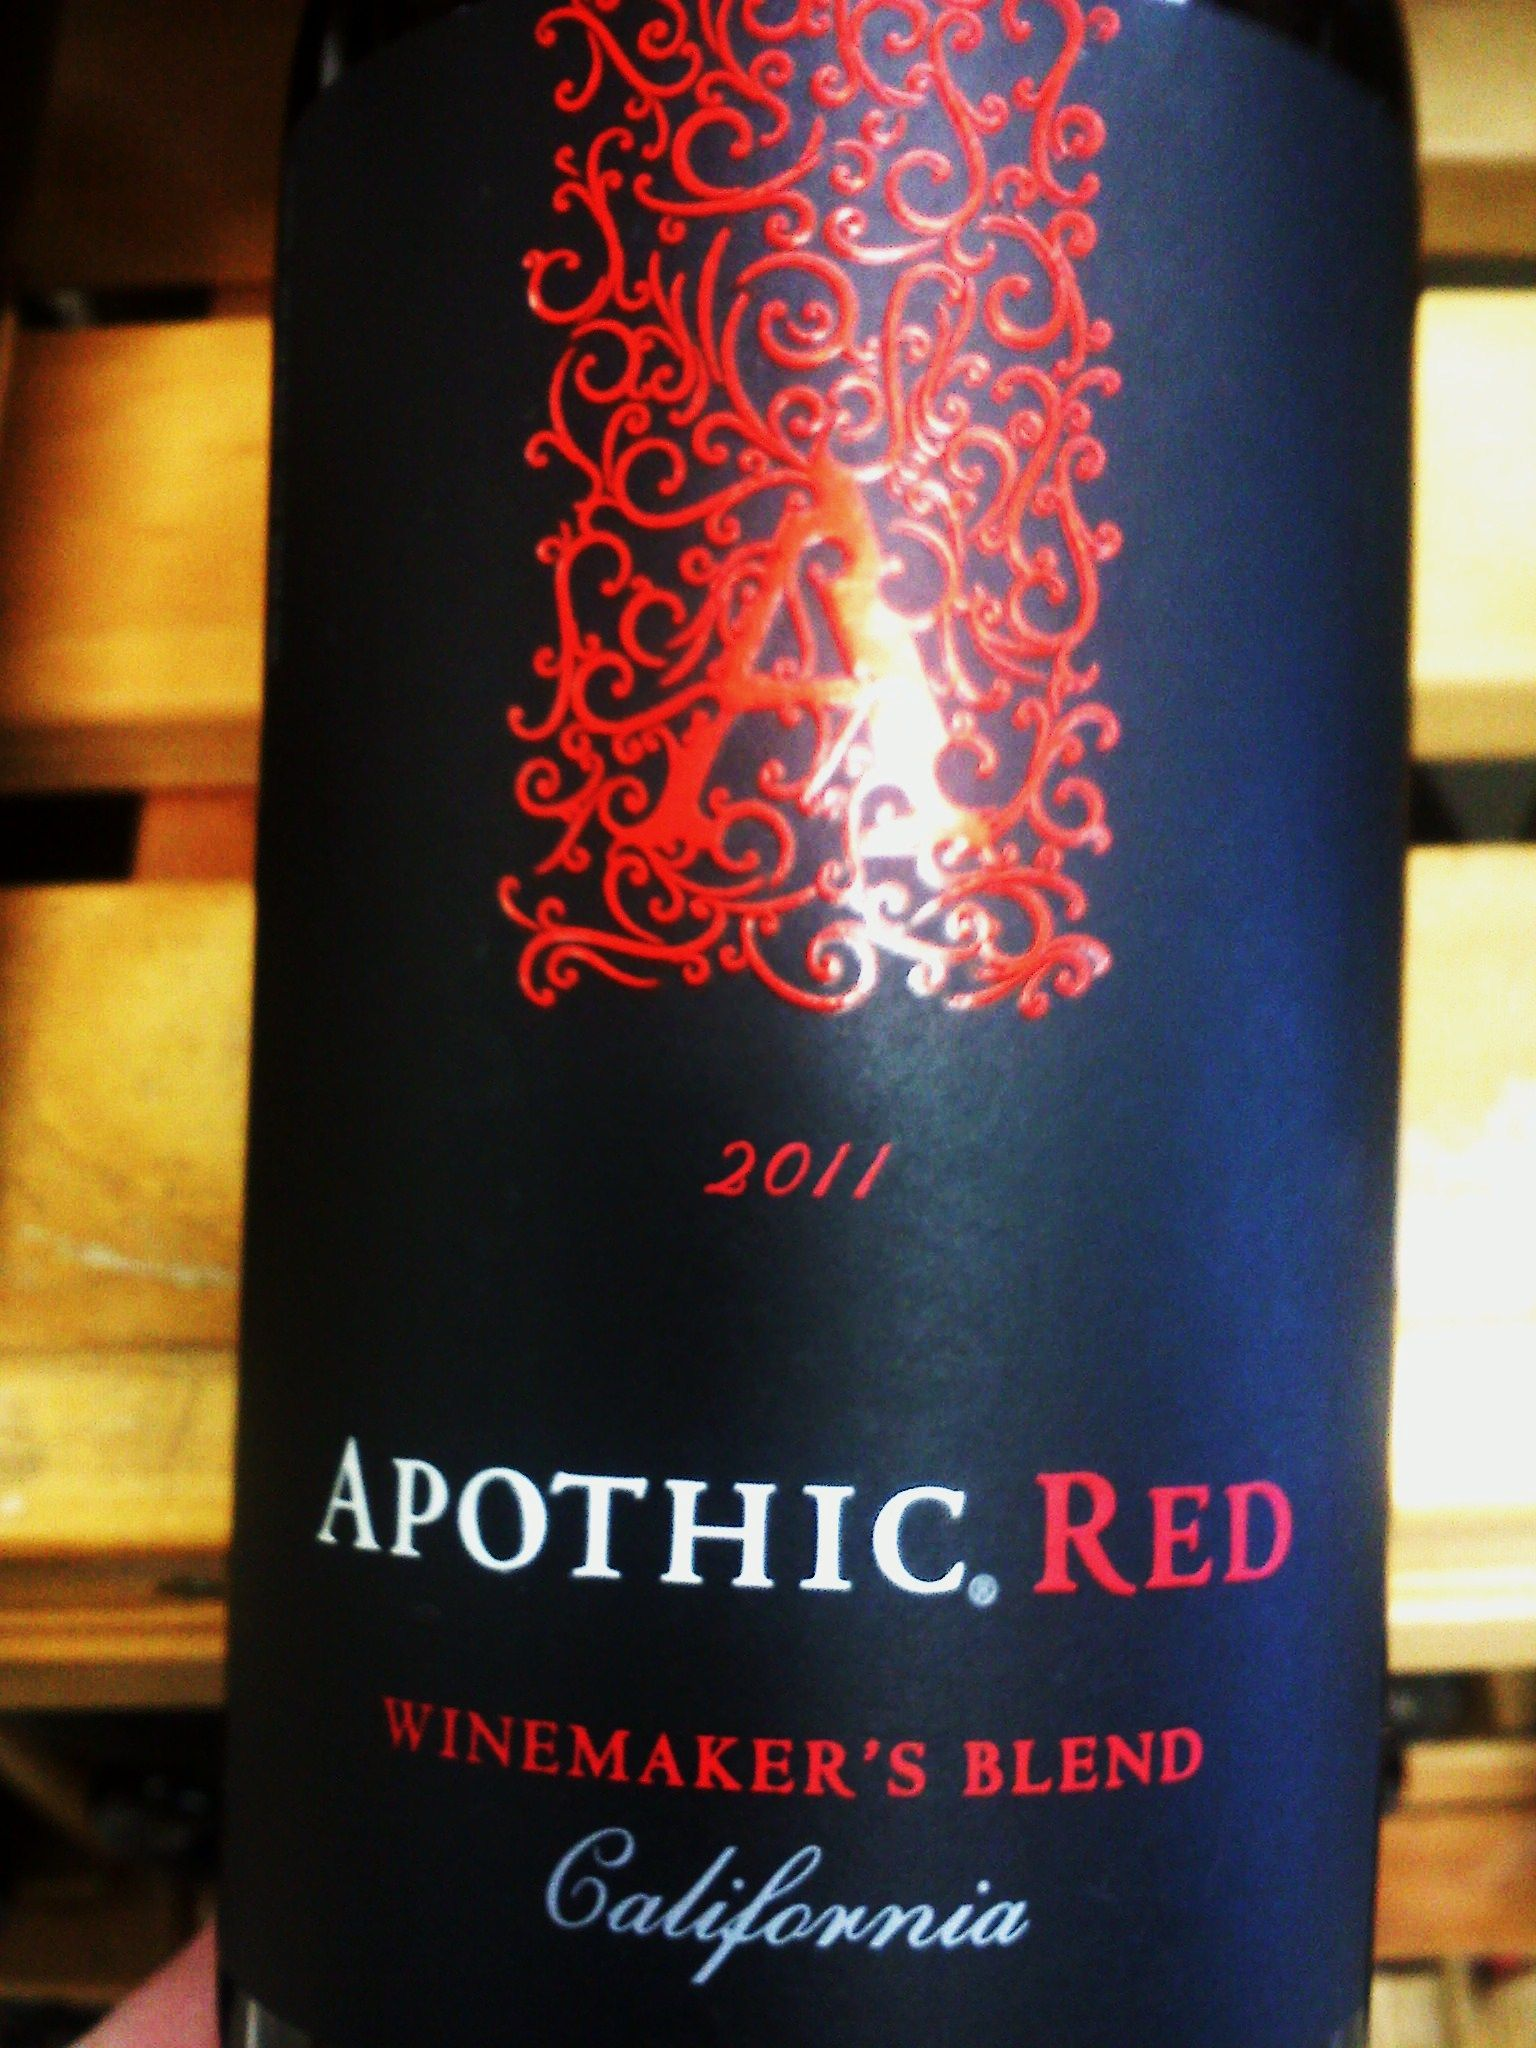 Always A Good Go To Wine Apothic Red Wine Love It And The Price Point Is Great As Well Wine And Beer Red Wine Winemaking